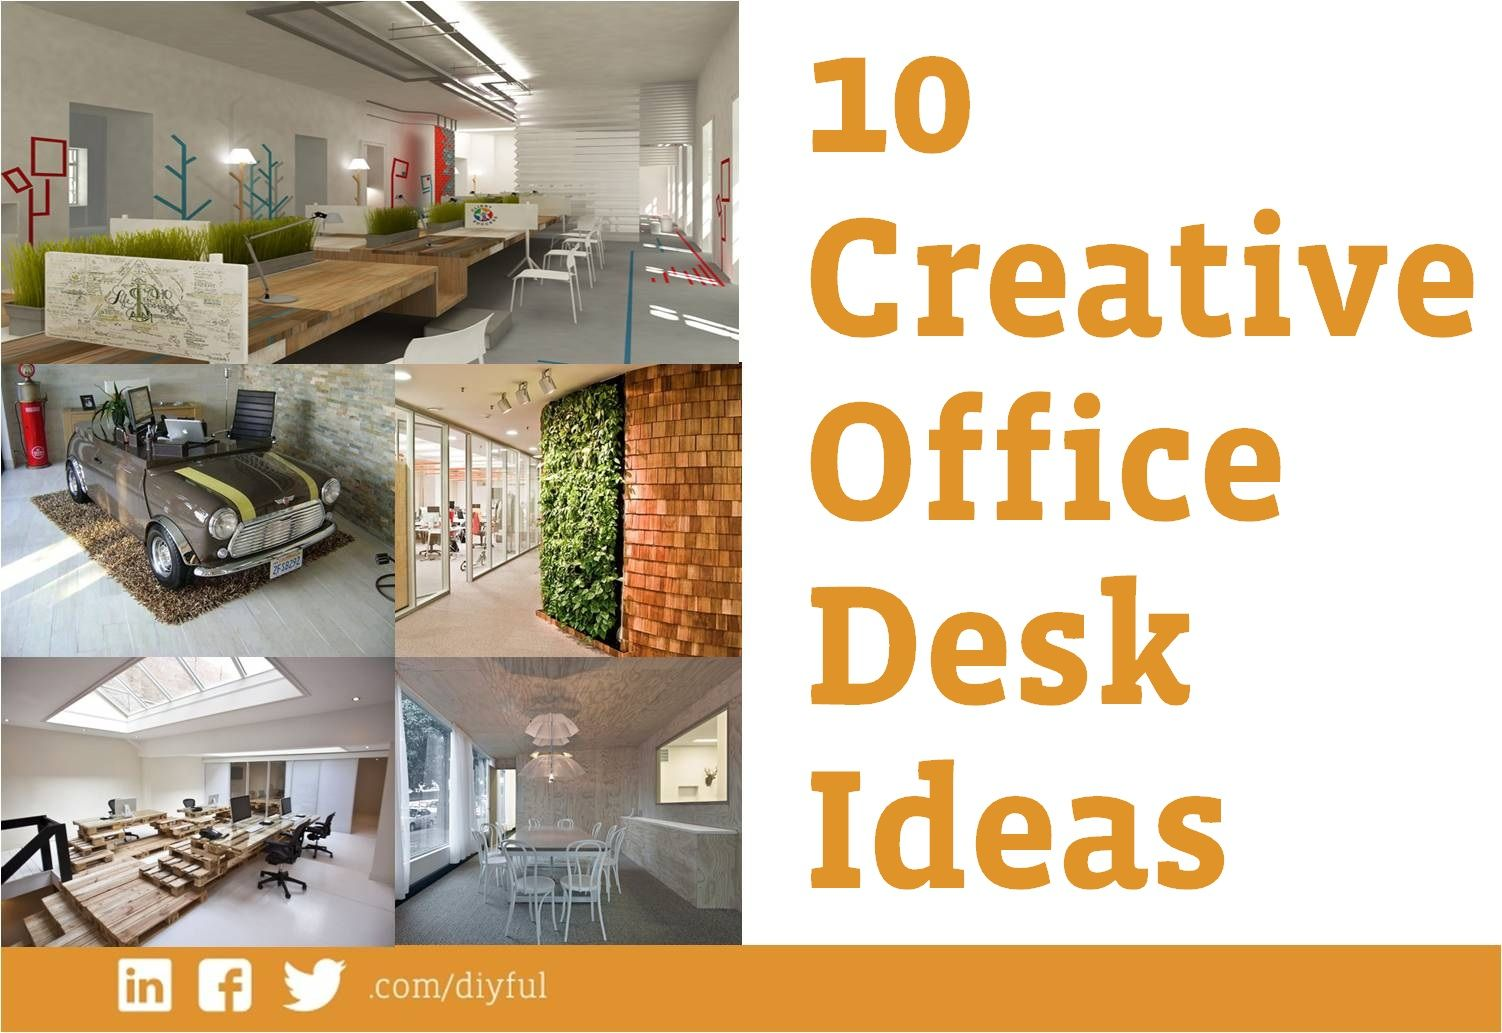 10 Creative Office Desk Ideas Diy Office Desk Diy Desk Wall